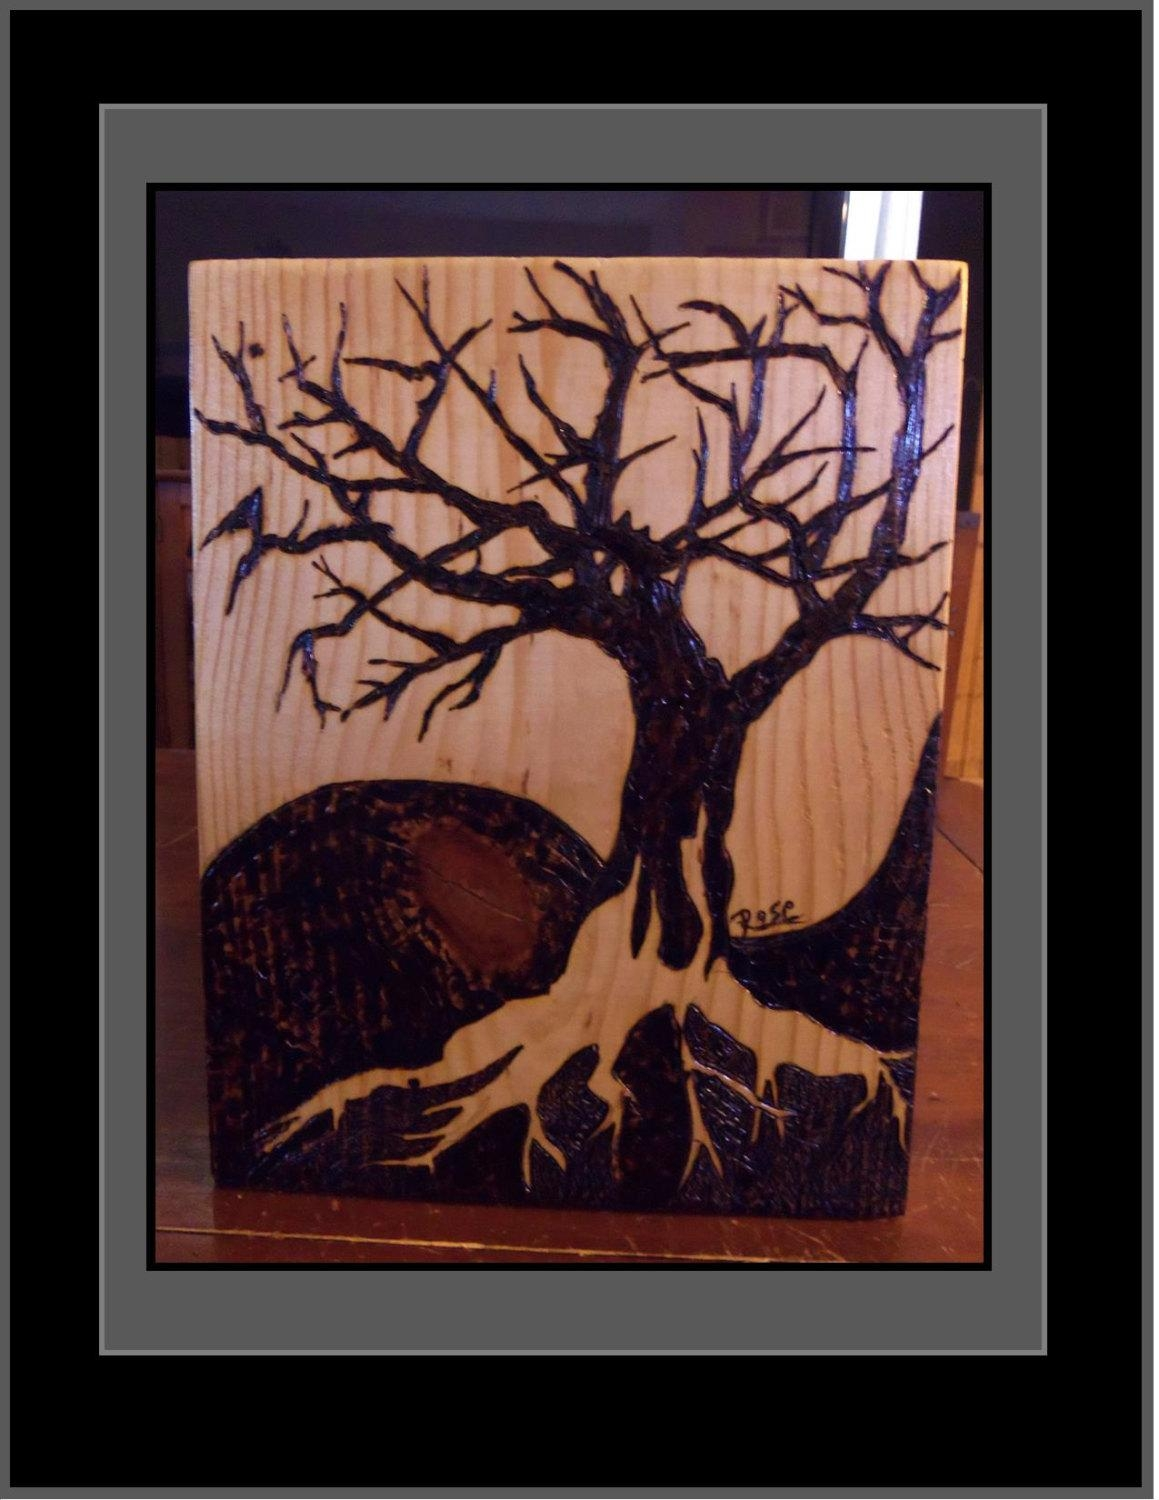 Rustic Decorcabin Decortree Of Lifetree Artwood with regard to Celtic Tree Of Life Wall Art